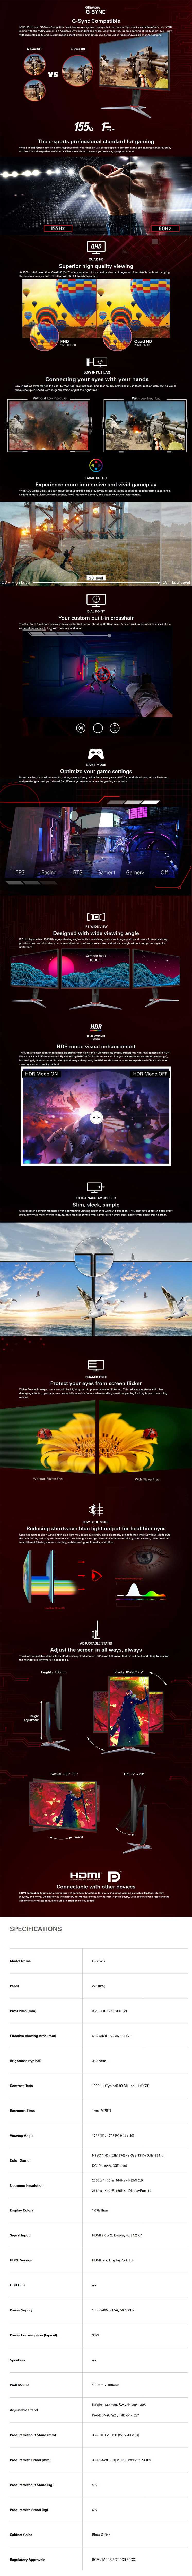 """AOC Q27G2S 27"""" 155Hz WQHD 1ms G-Sync Compatible IPS Gaming Monitor - Overview 1"""